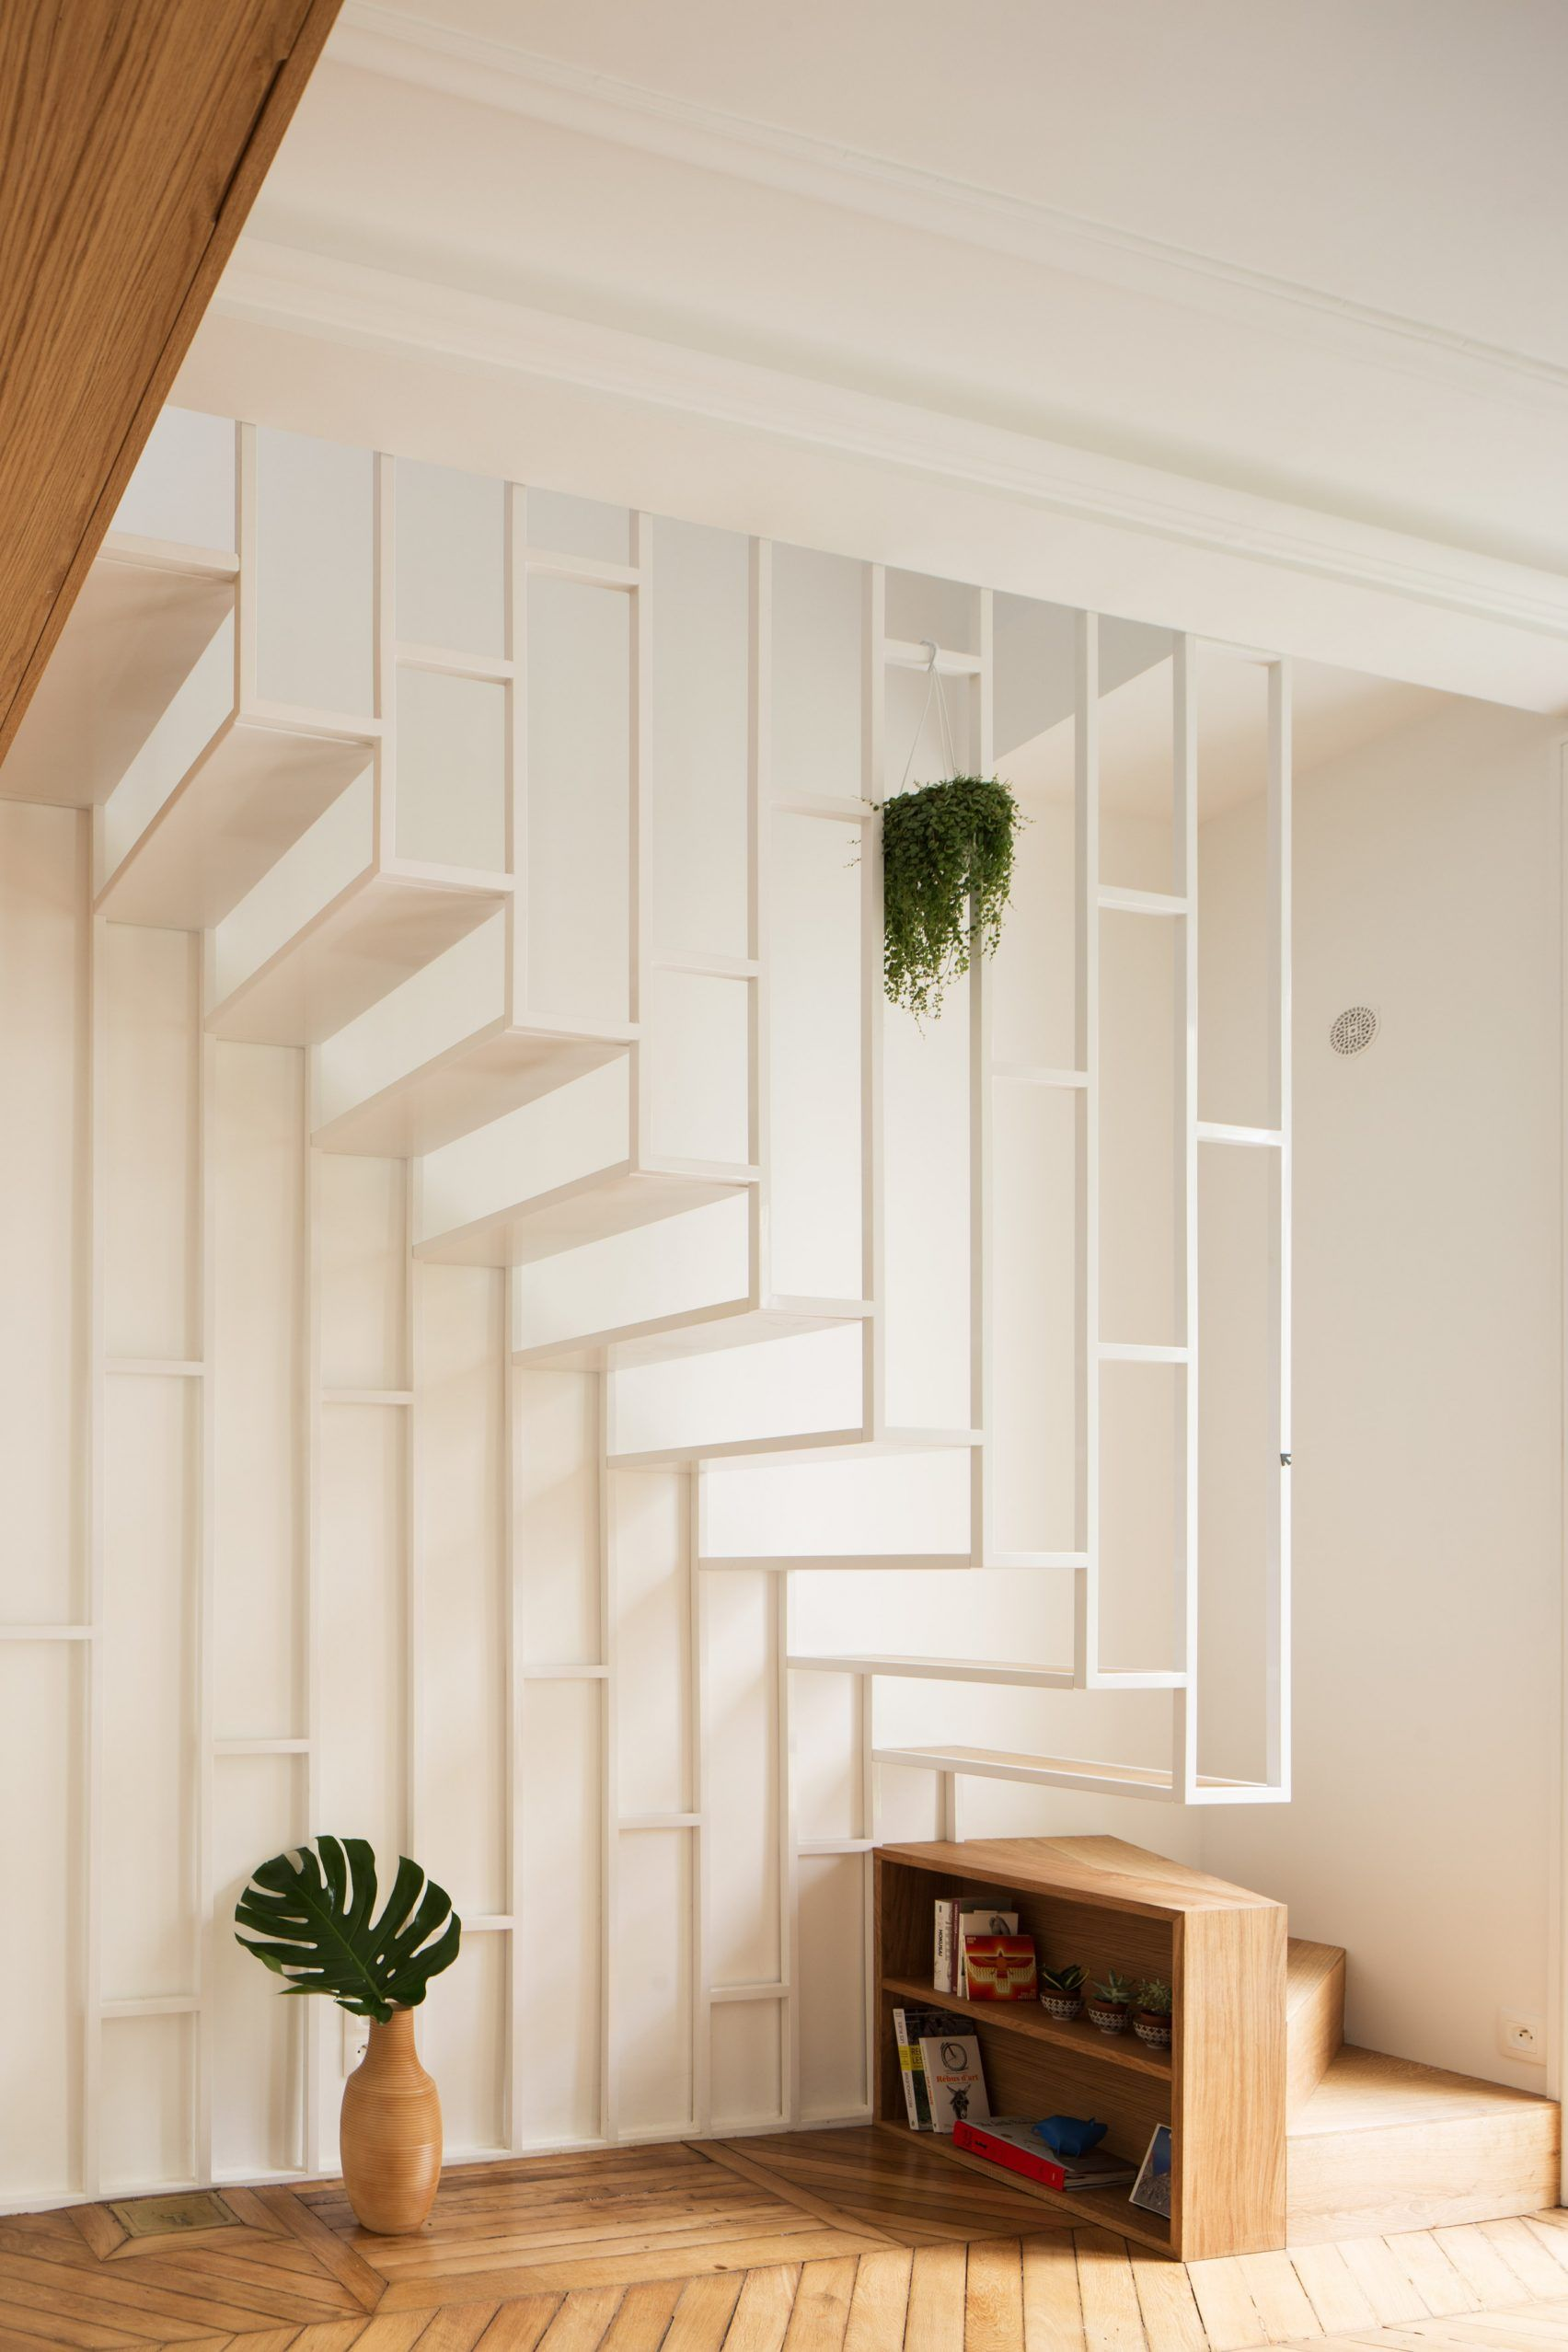 Paris apartment overhauled with slender white staircase and dark kitchen